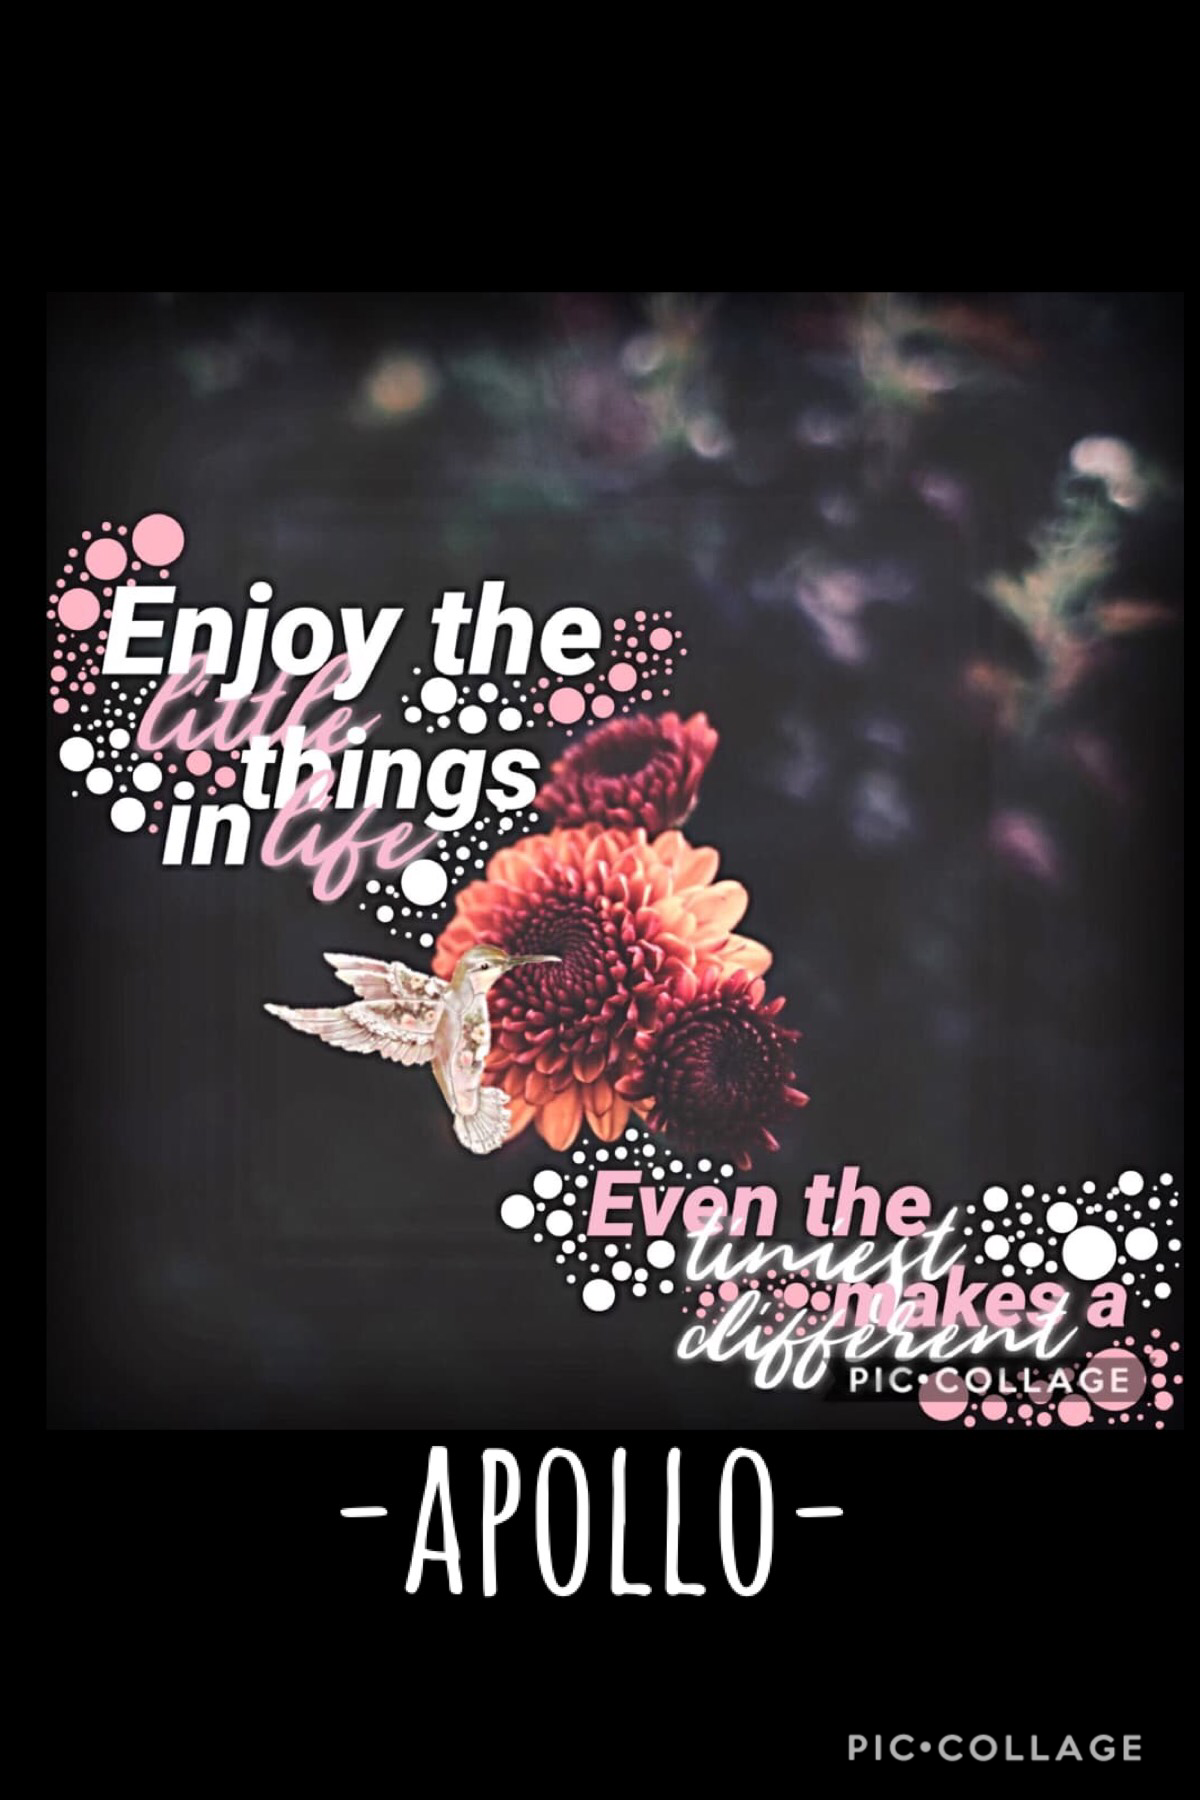 🌸TAP🌺 Please follow-Apollo- , they have great collages and just they are amazing ❤️. Also , sorry I have been gone😬